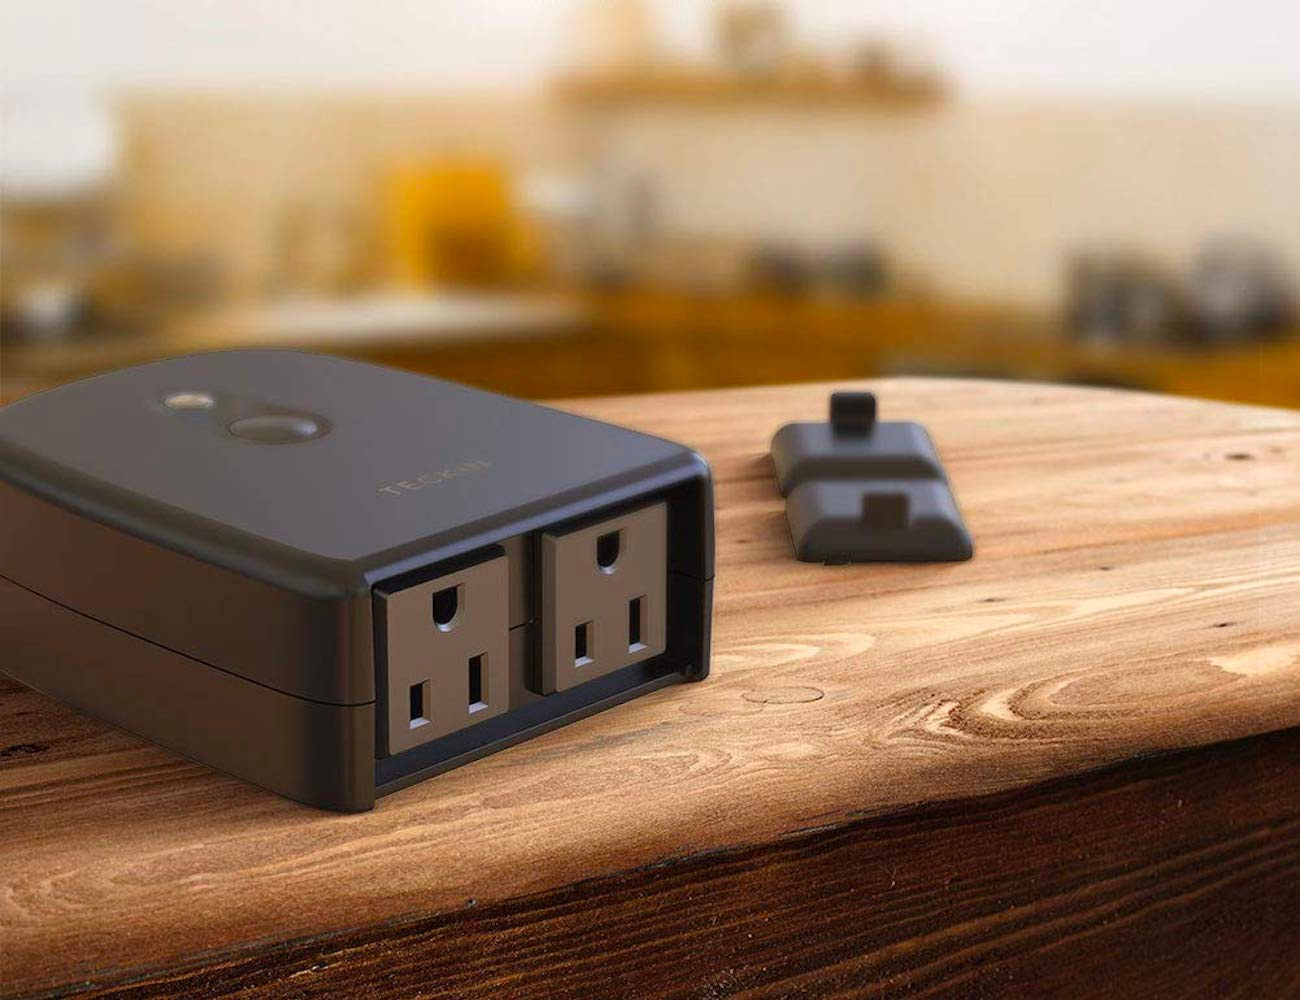 TECKIN's Outdoor Outlet Gives You All-Weather Wi-Fi & Voice-Control at werd.com